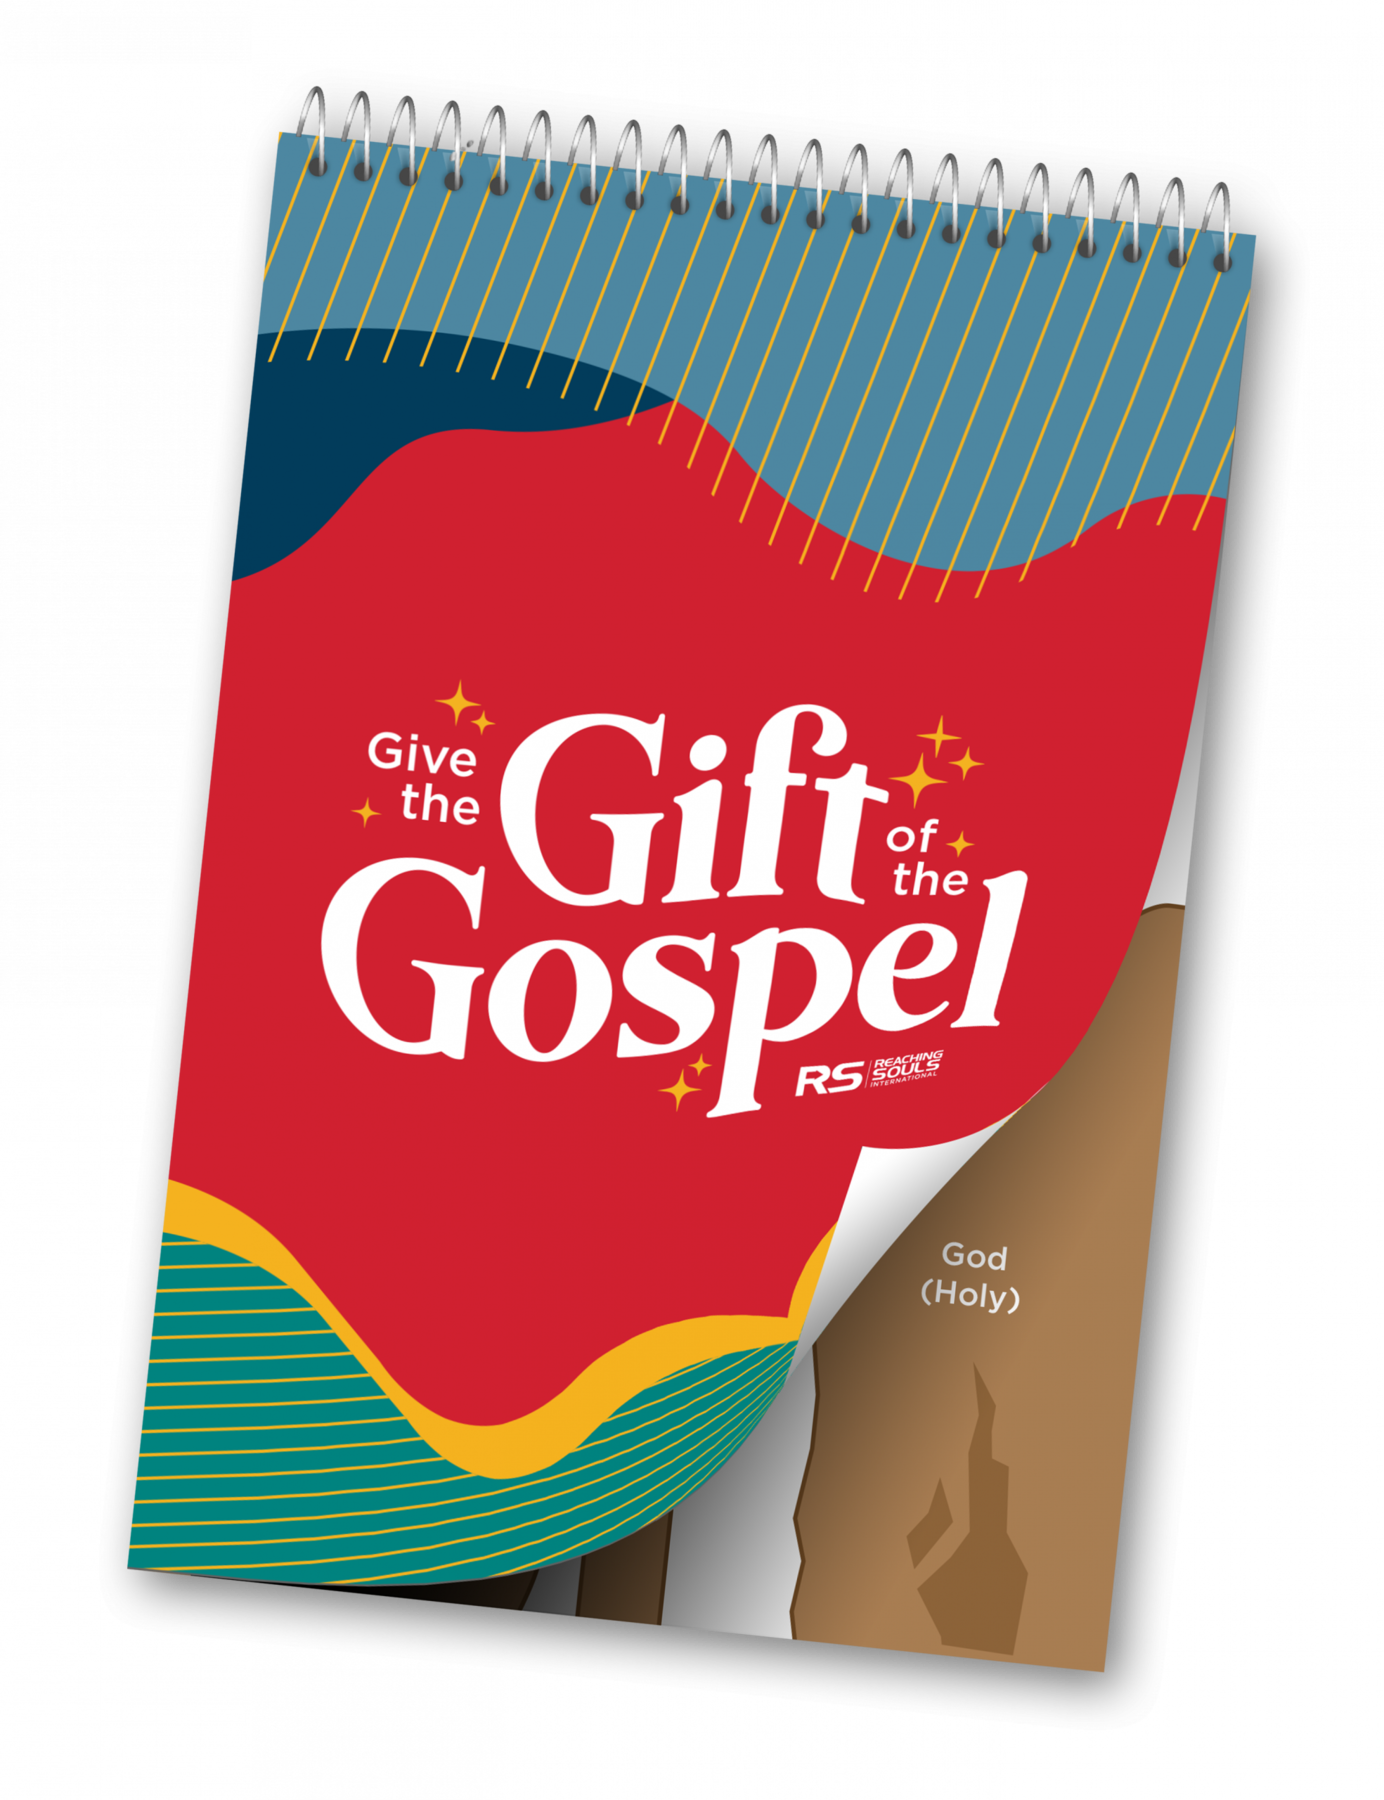 """A mockup of the """"Give the Gift of the Gospel"""" activity book"""